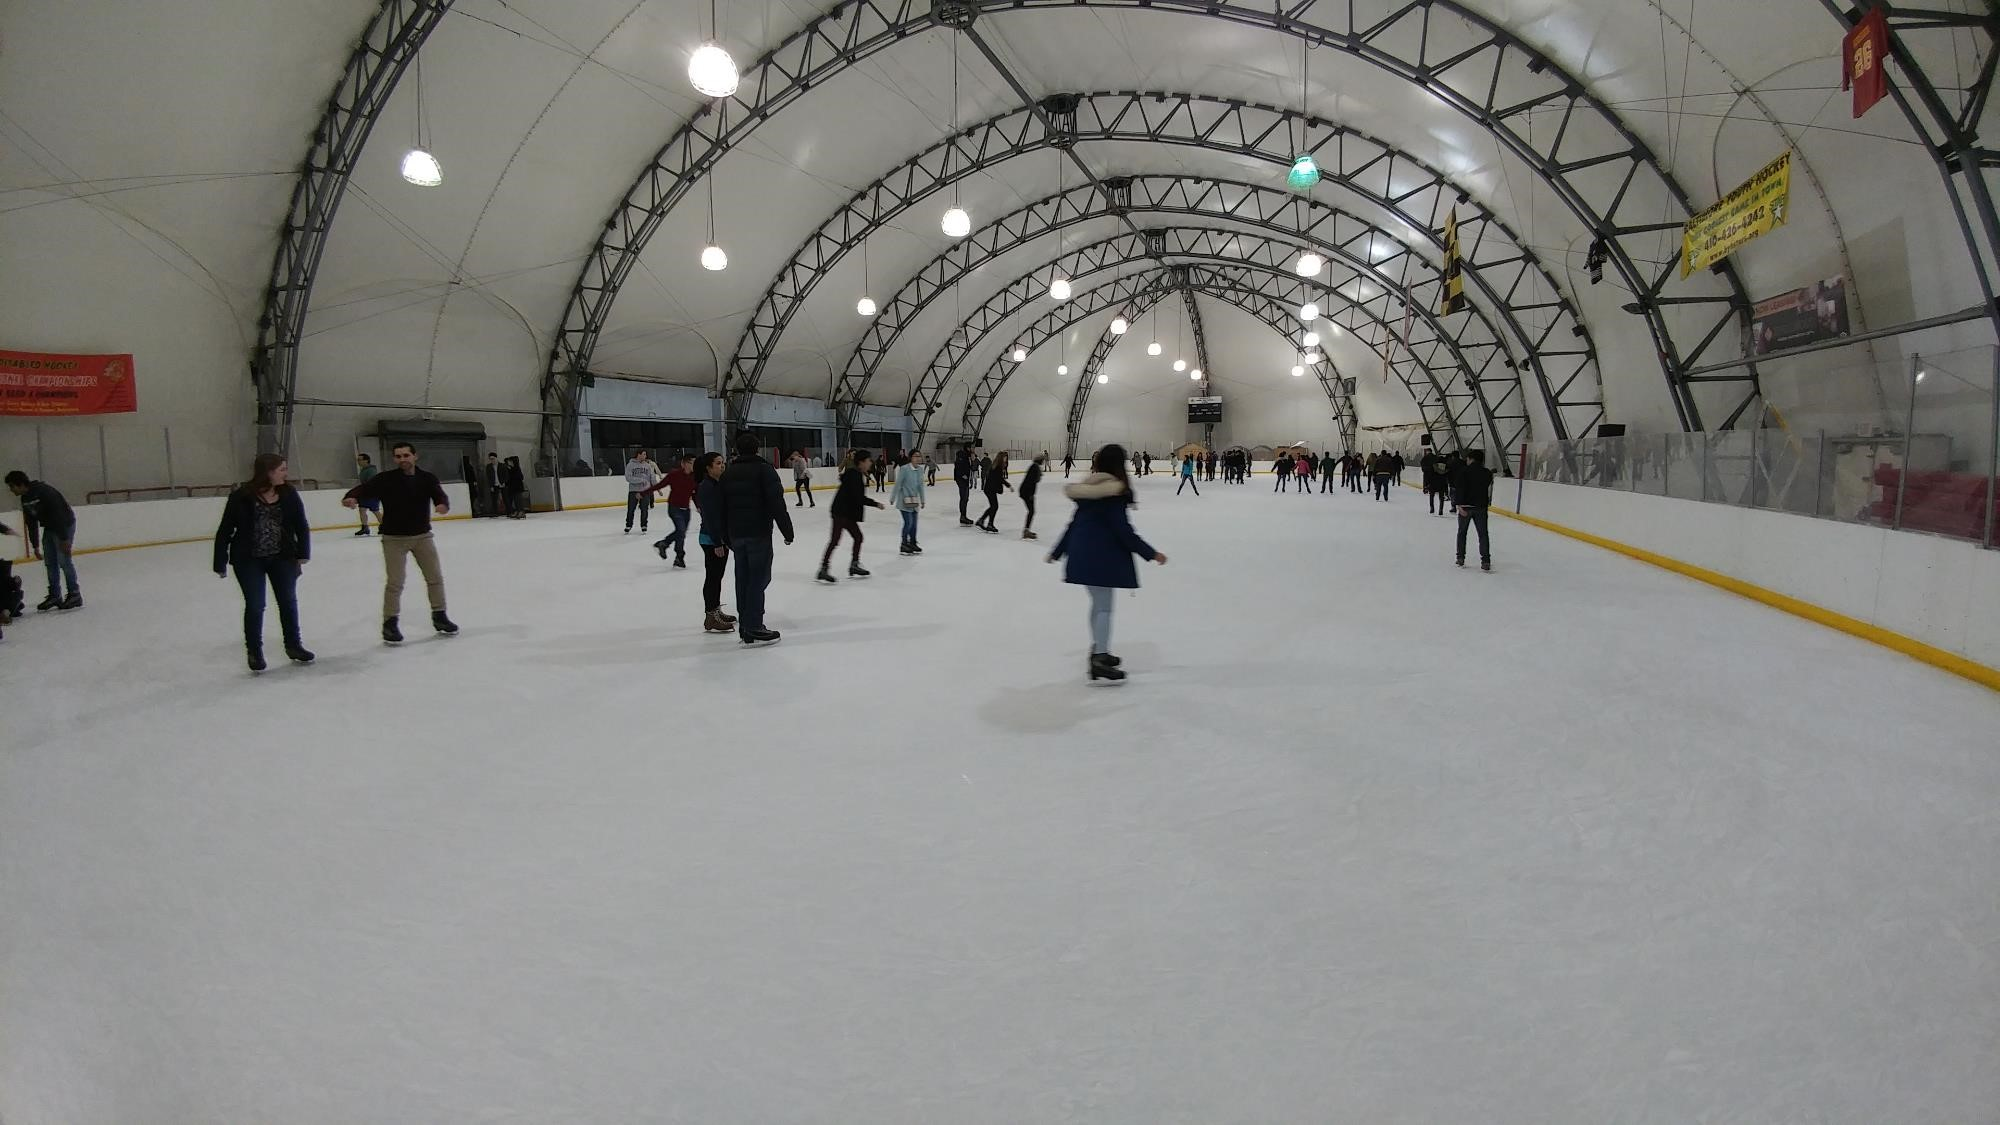 Ice Skating Feb 2017 5 compressed